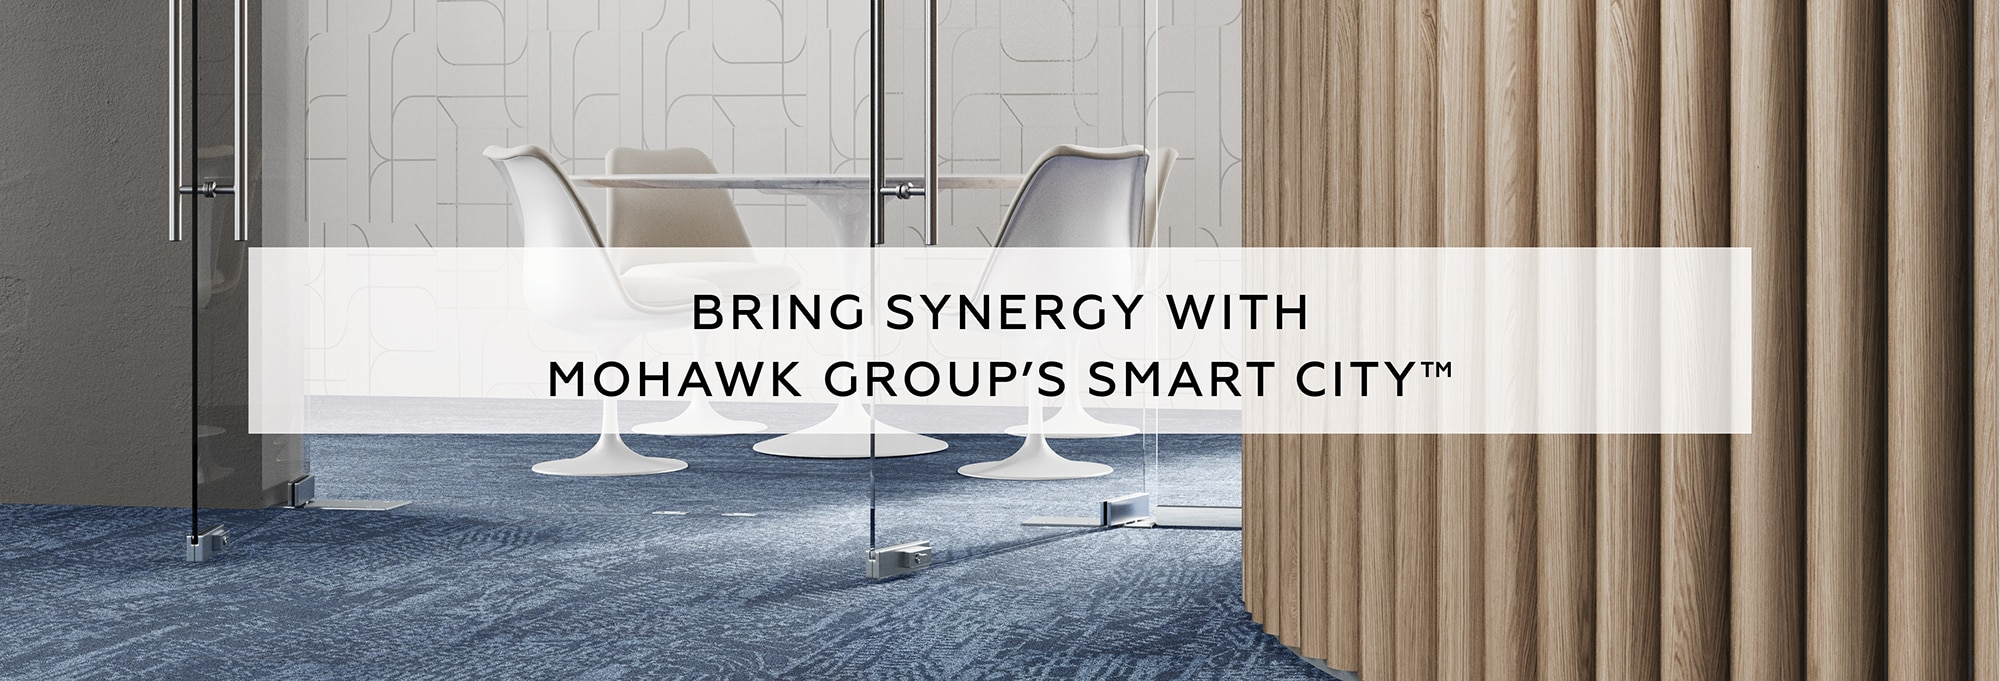 Bring synergy with Mohawk Group's Smart City carpet.